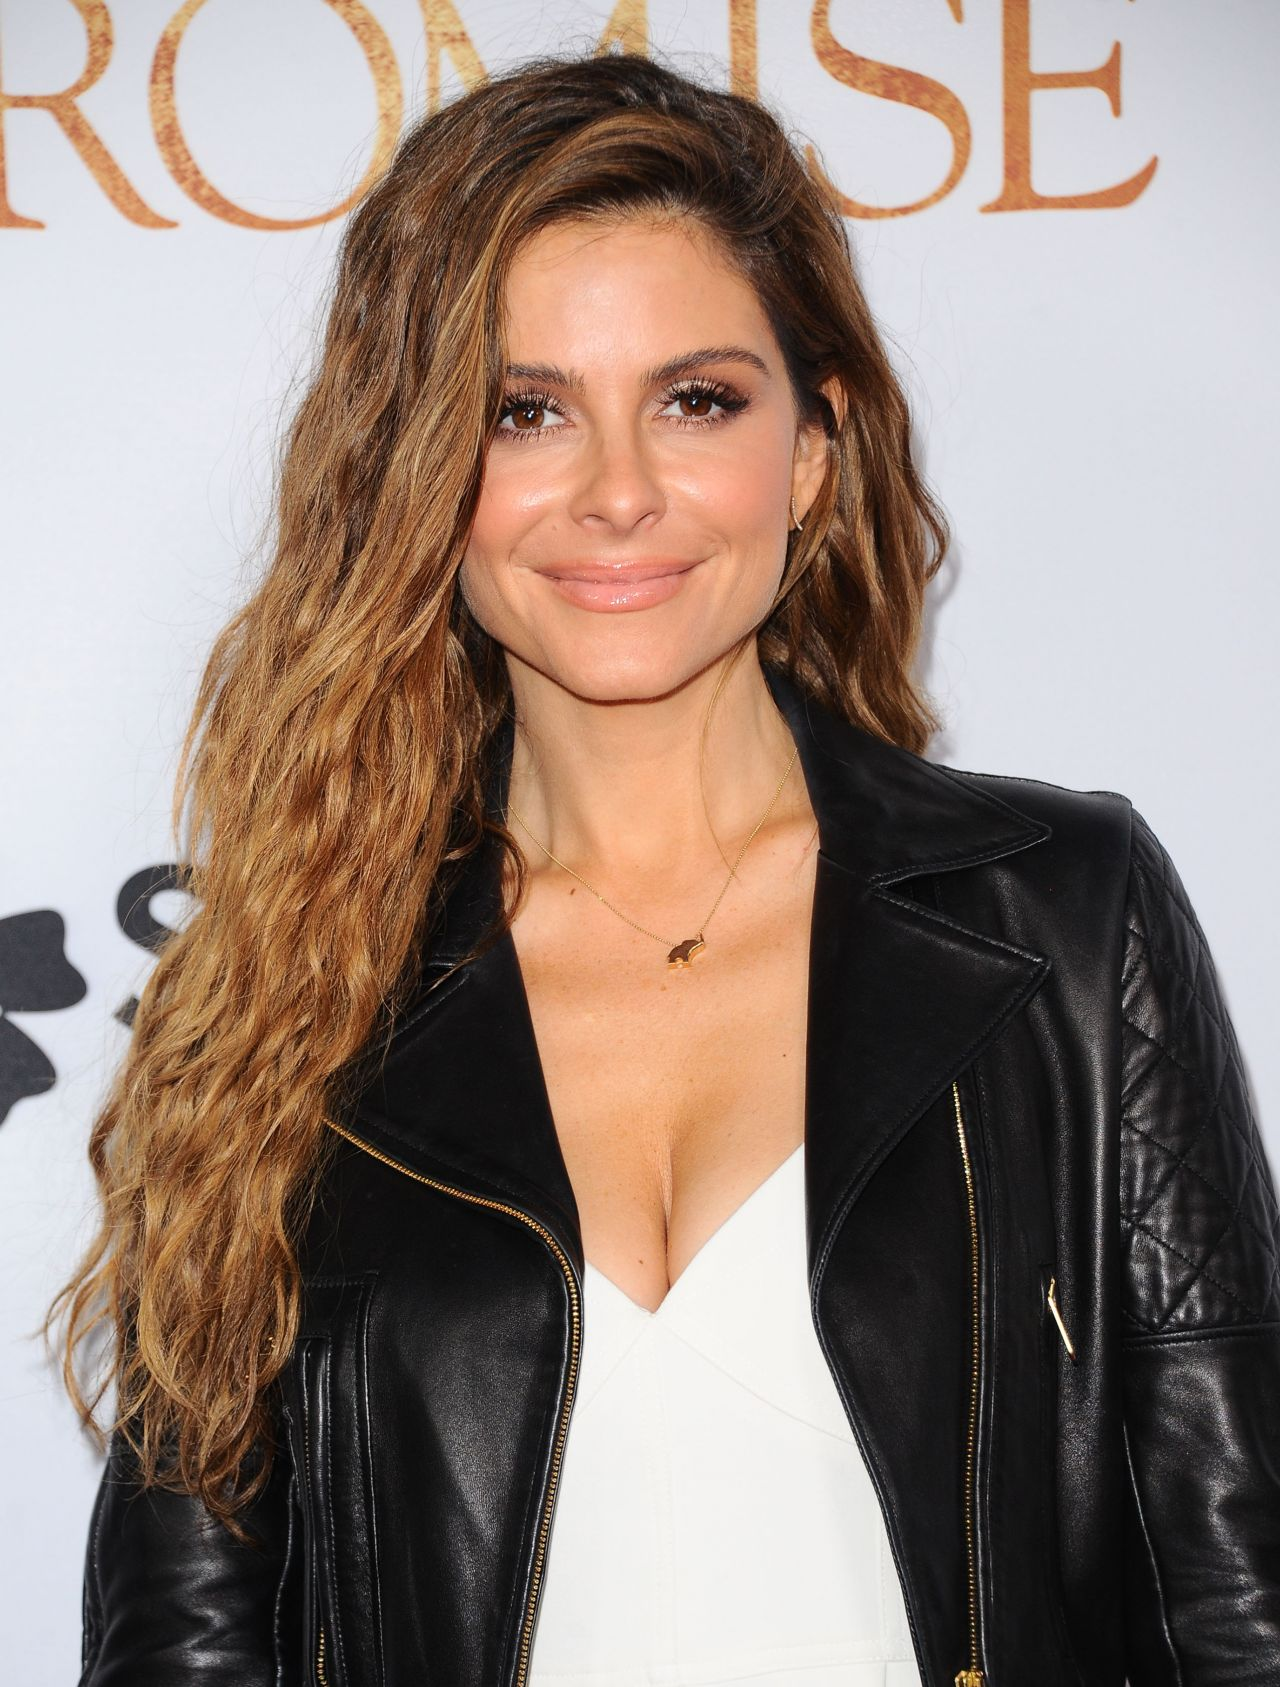 Maria Menounos Latest Photos Celebmafia